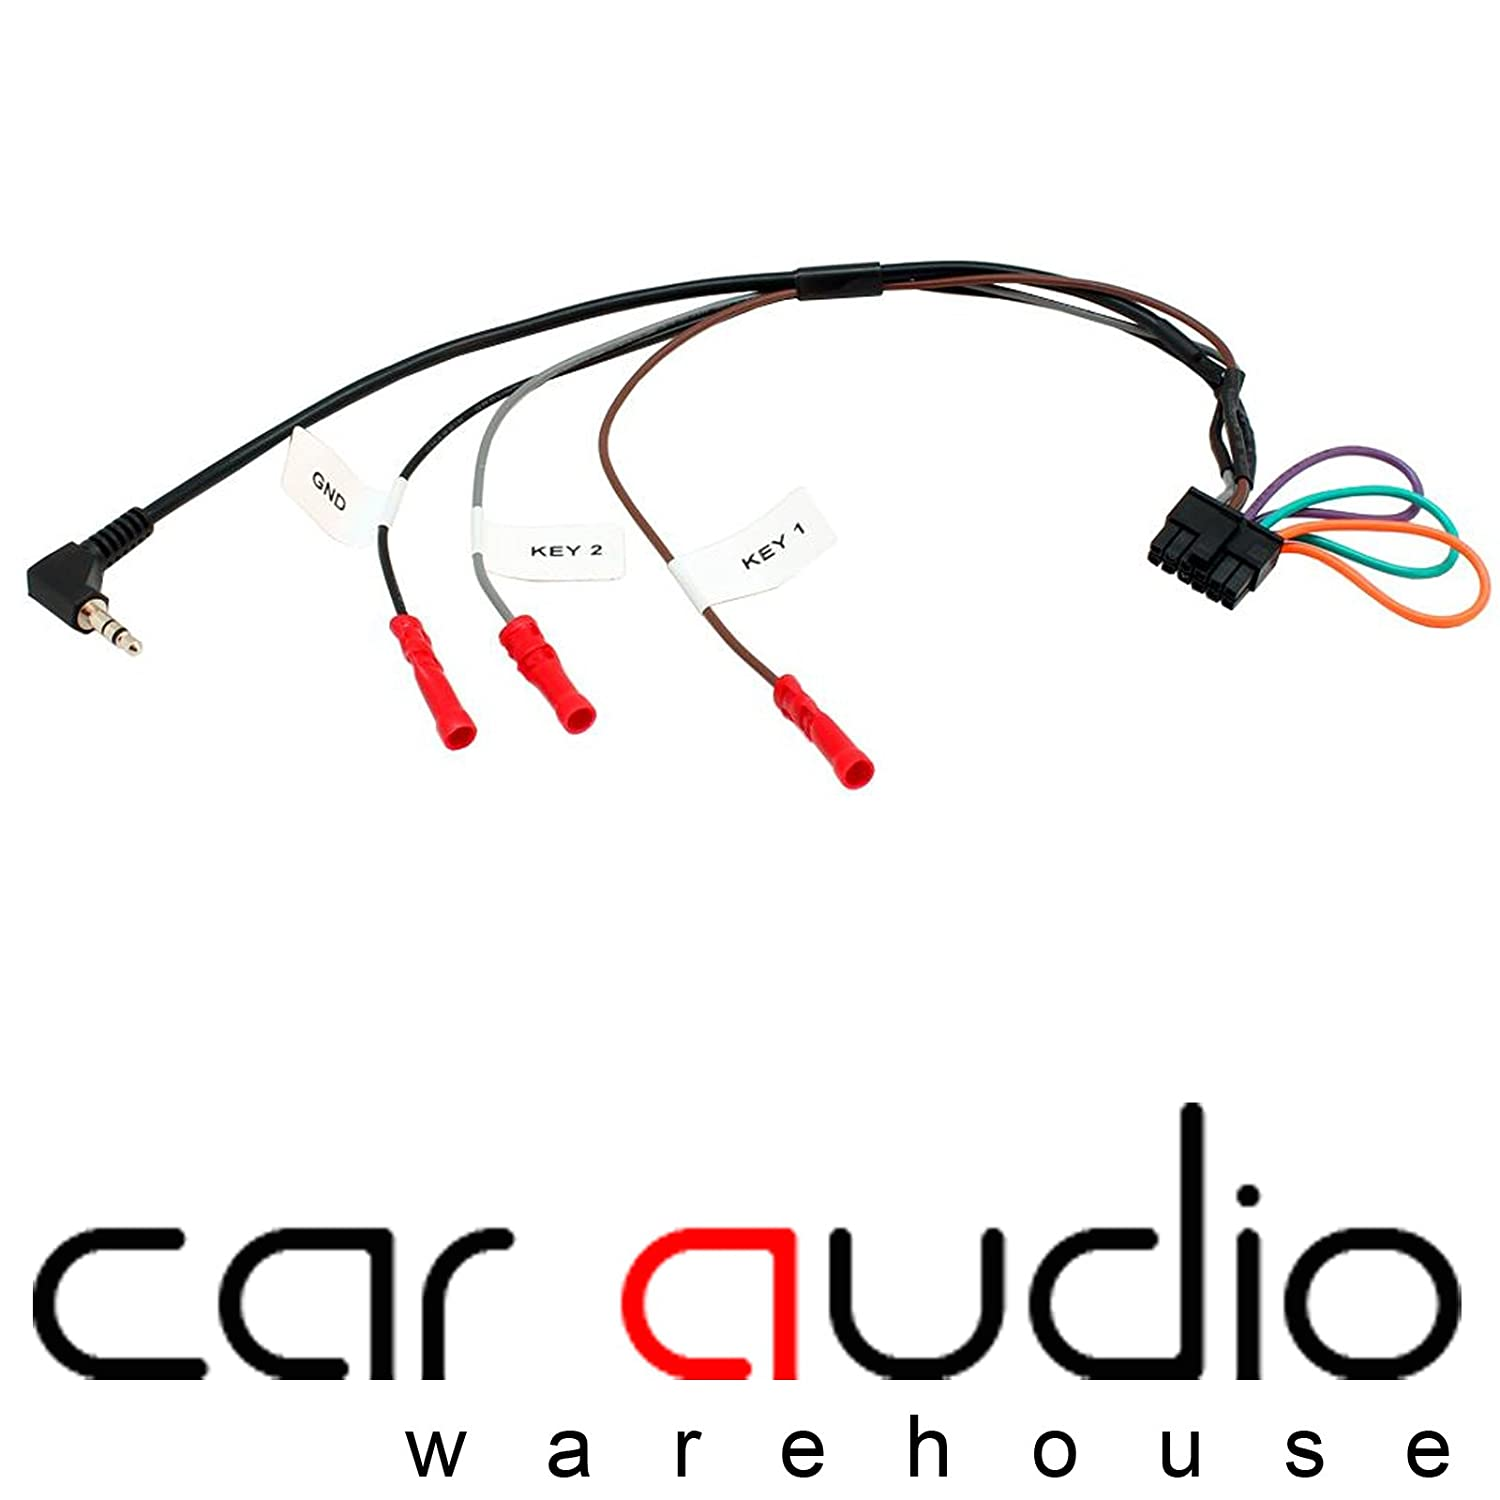 T1 Audio Vx3 Vauxhall Corsa D Car Steering Wheel Stalk Control Cd30 Wiring Interface Adaptor With Free Patch Lead Motorbike